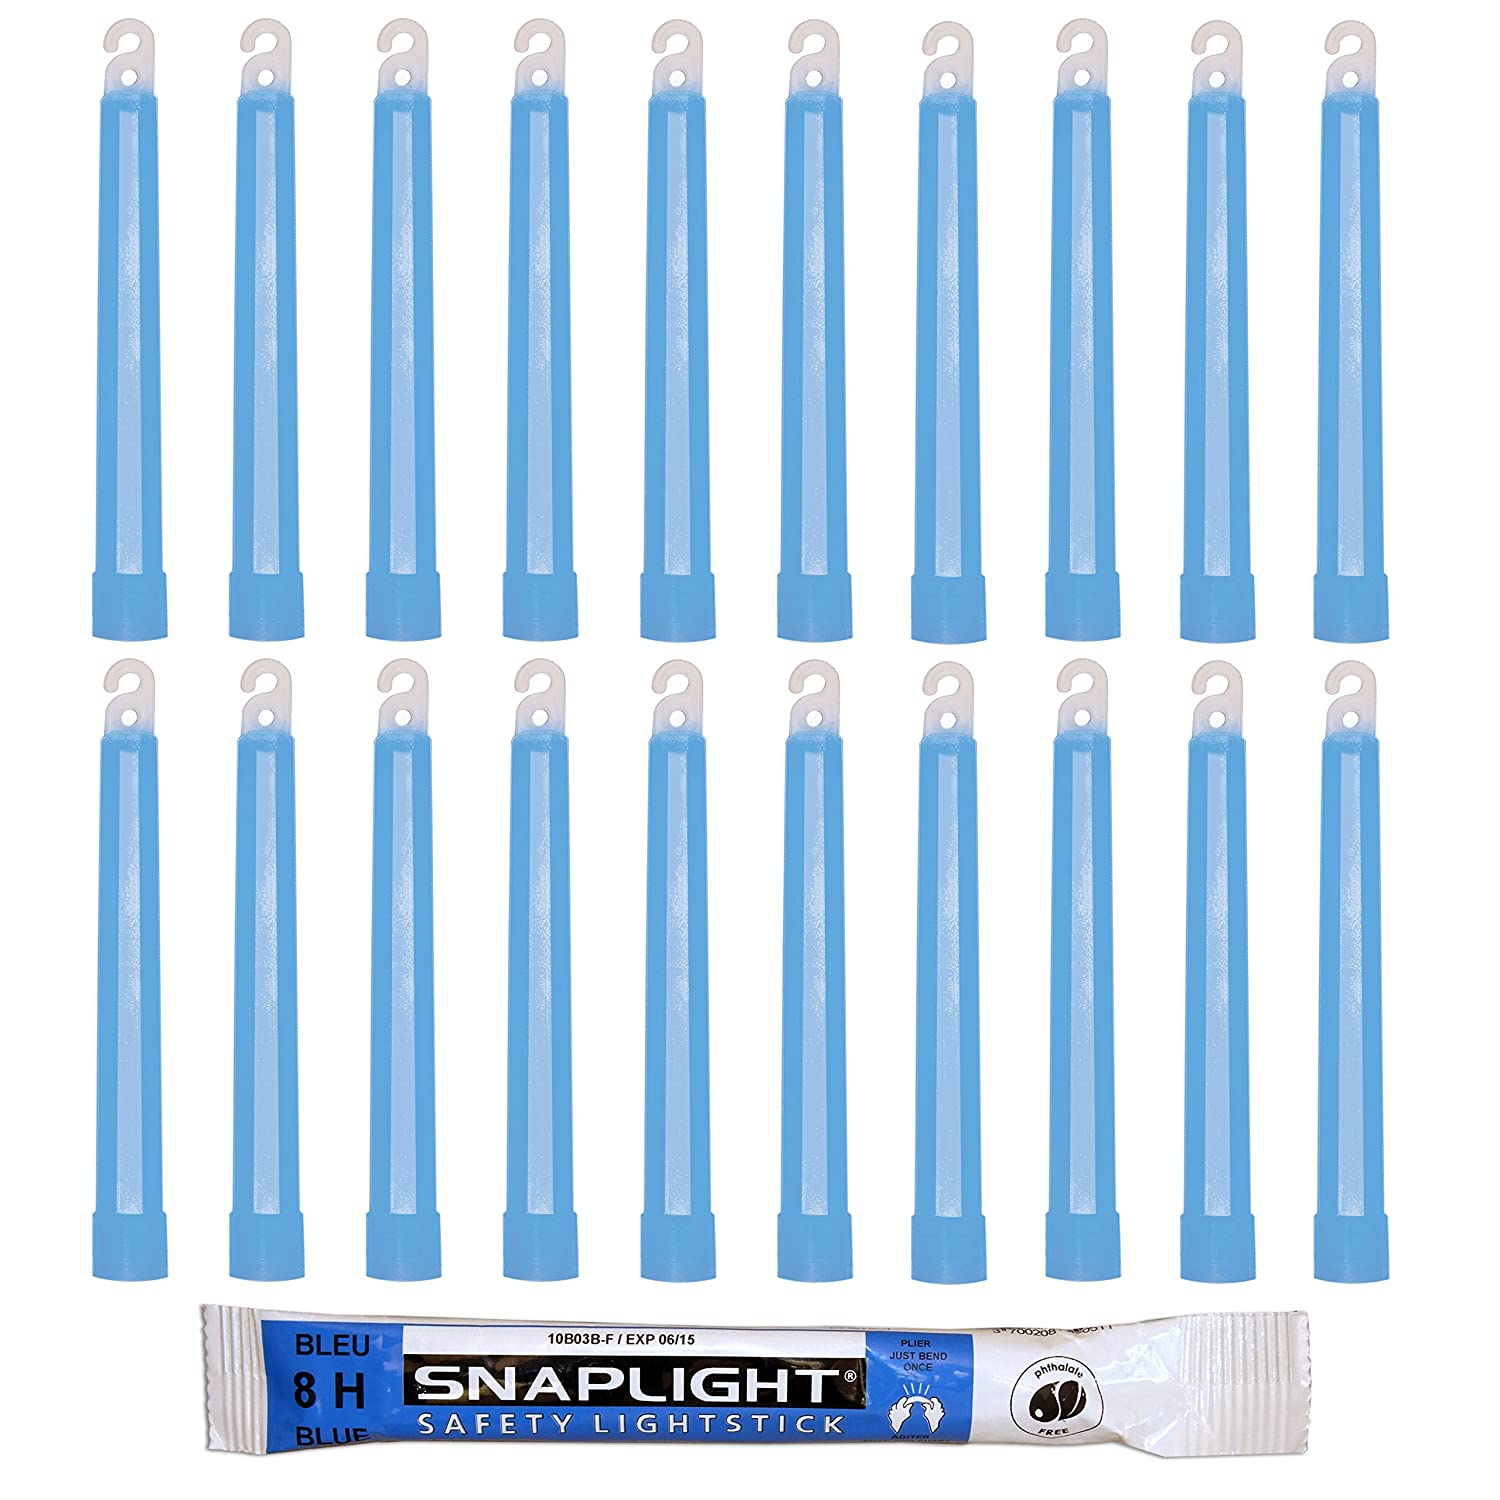 Cyalume SnapLight Blue Glow Sticks – 6 Inch Industrial Grade, Ultra Bright Light Sticks with 8 Hour Duration (Pack of 10) Cyalume Technologies SA8-108080AM